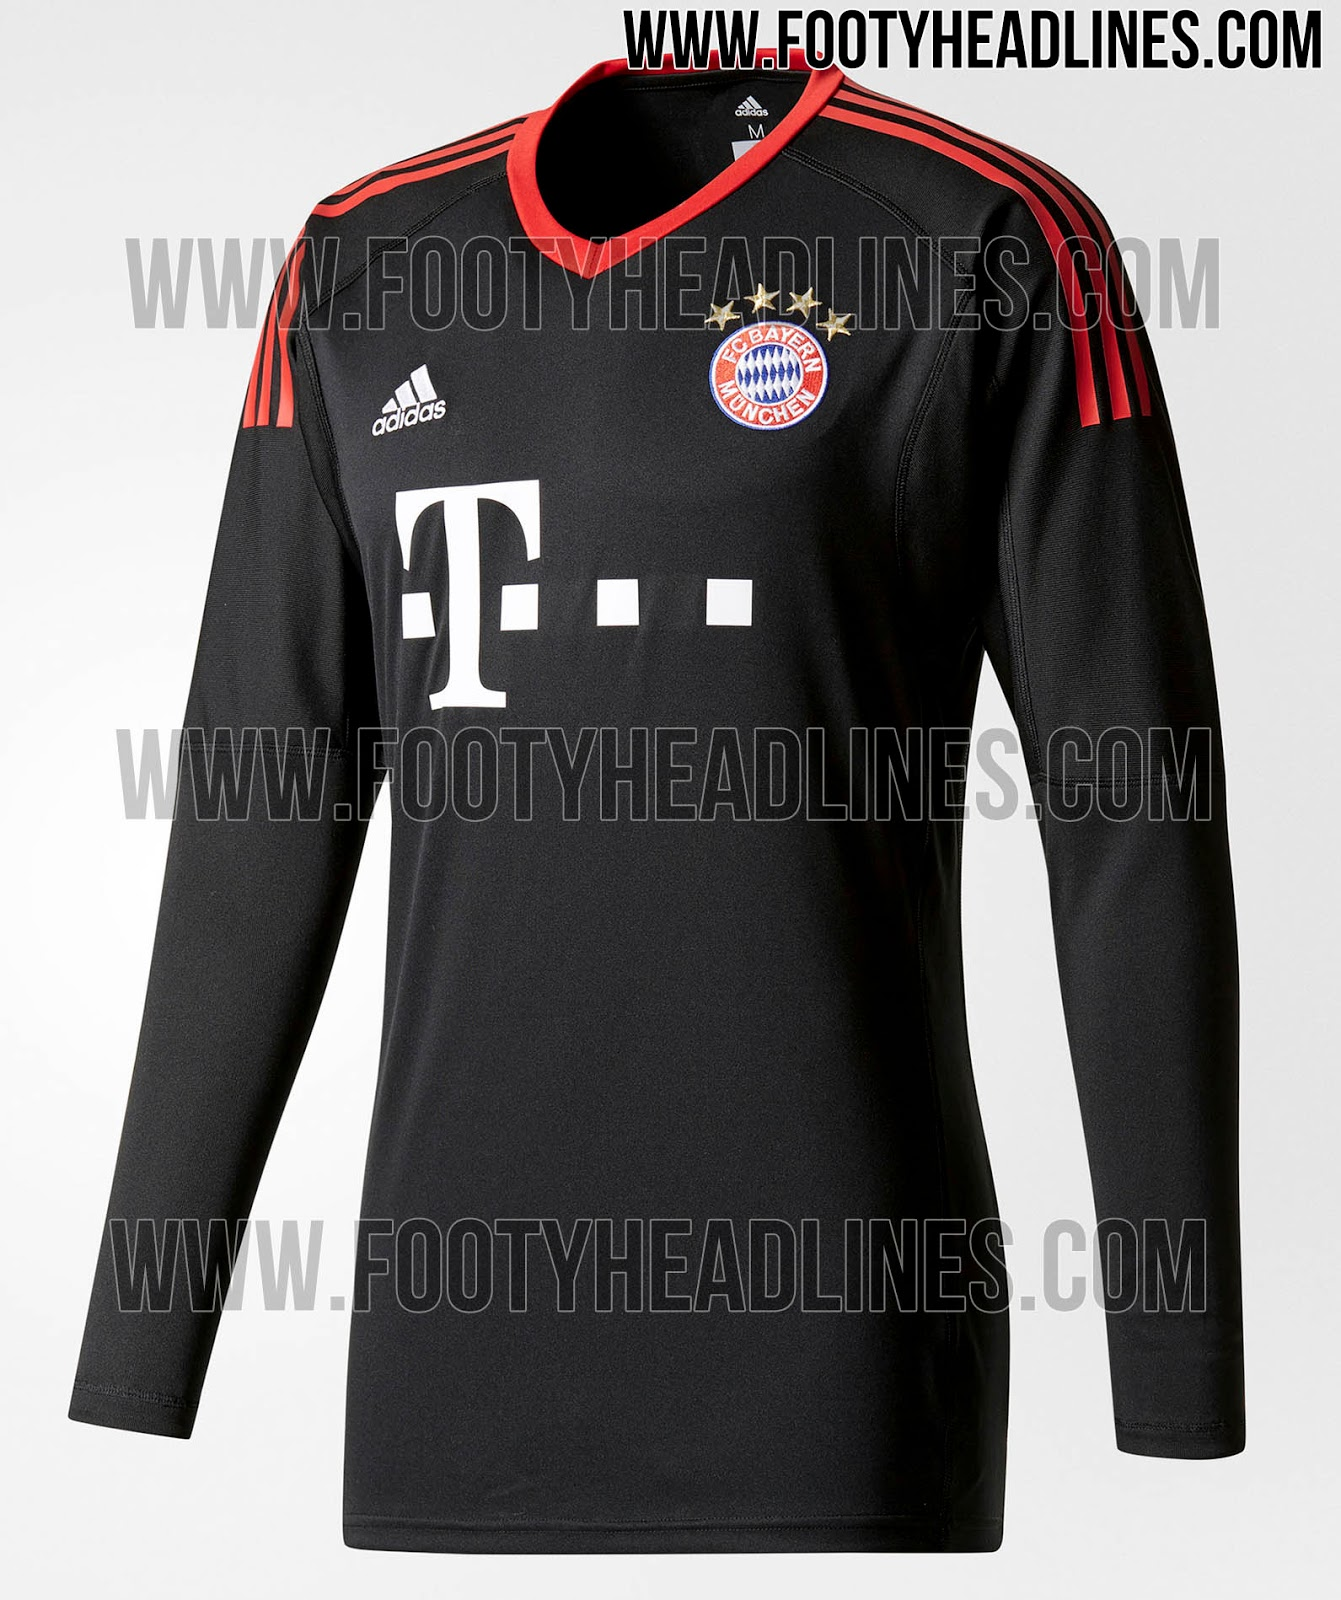 bayern-17-18-keeper-kit+%25282%2529.jpg